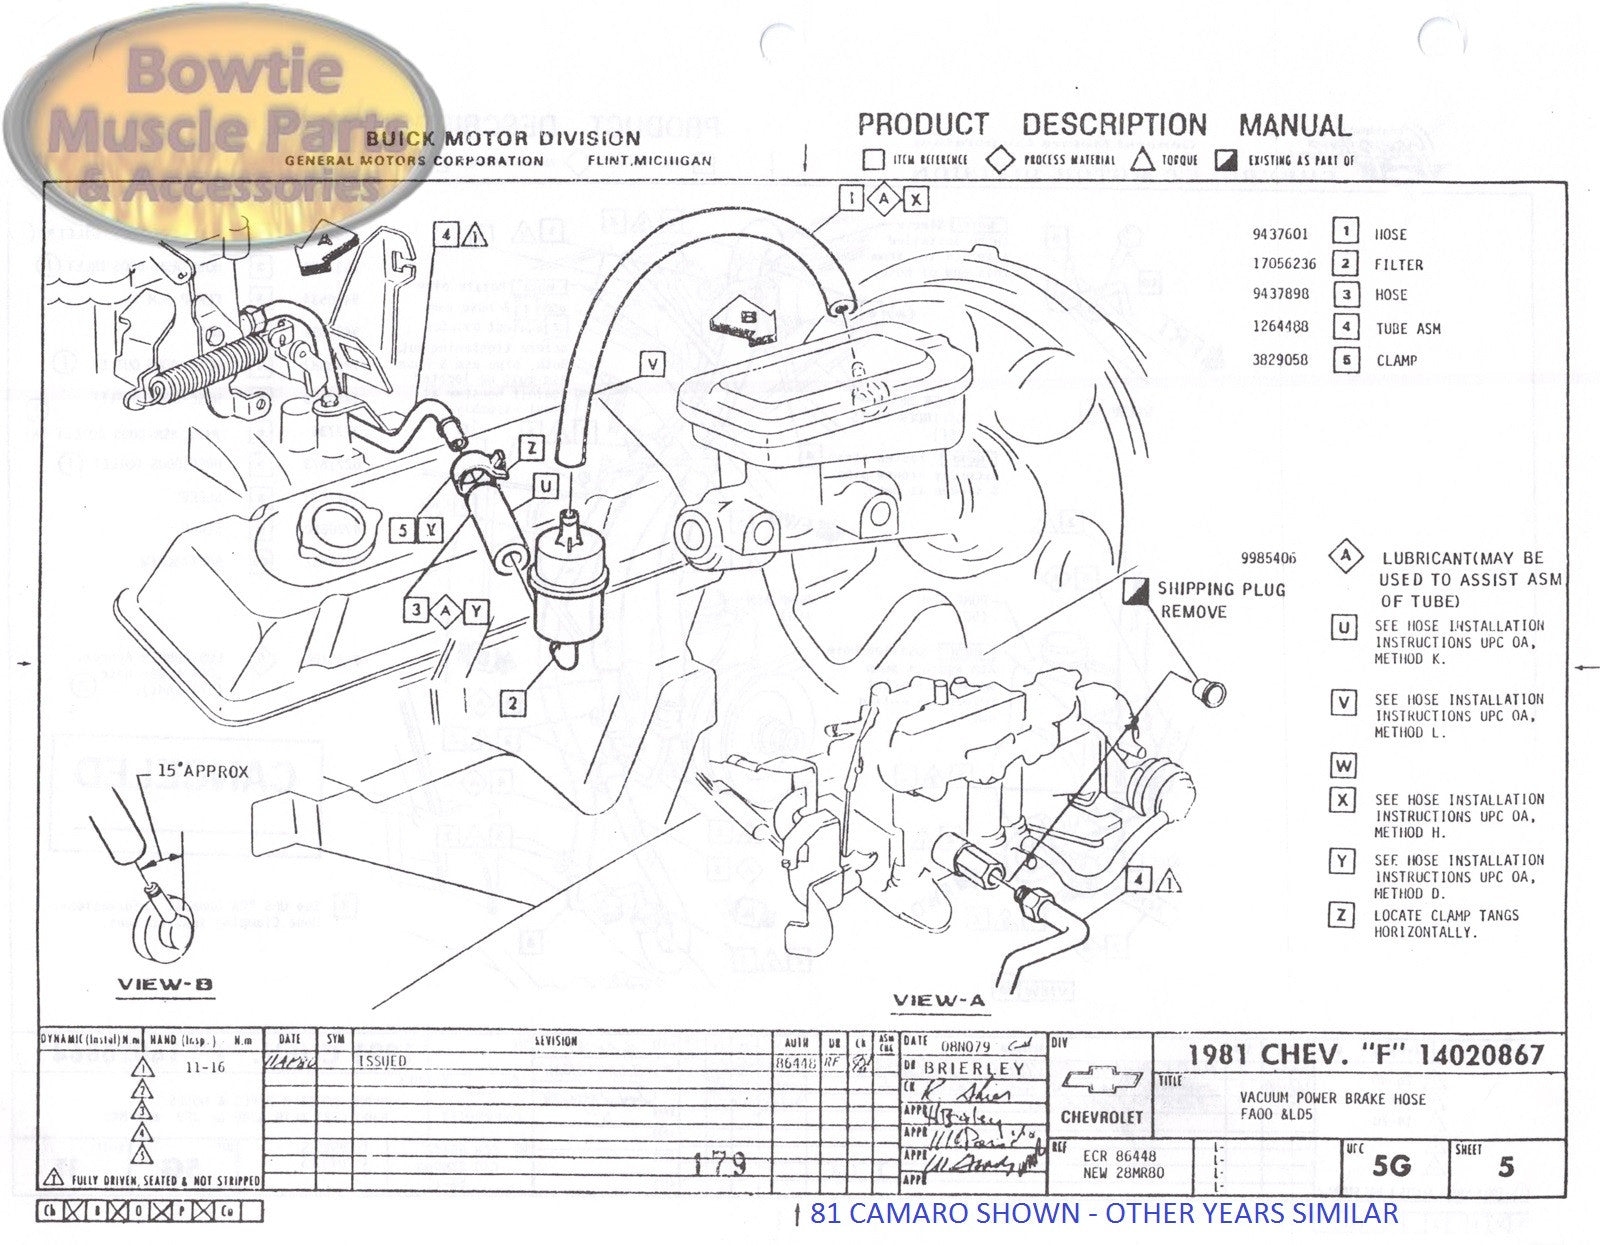 1970 70 camaro factory assembly manual z28 ss rs bowtiemuscleparts rh bowtiemuscleparts com D16Z6 Transmission Exploded View Manual Manual Nissan Skyline